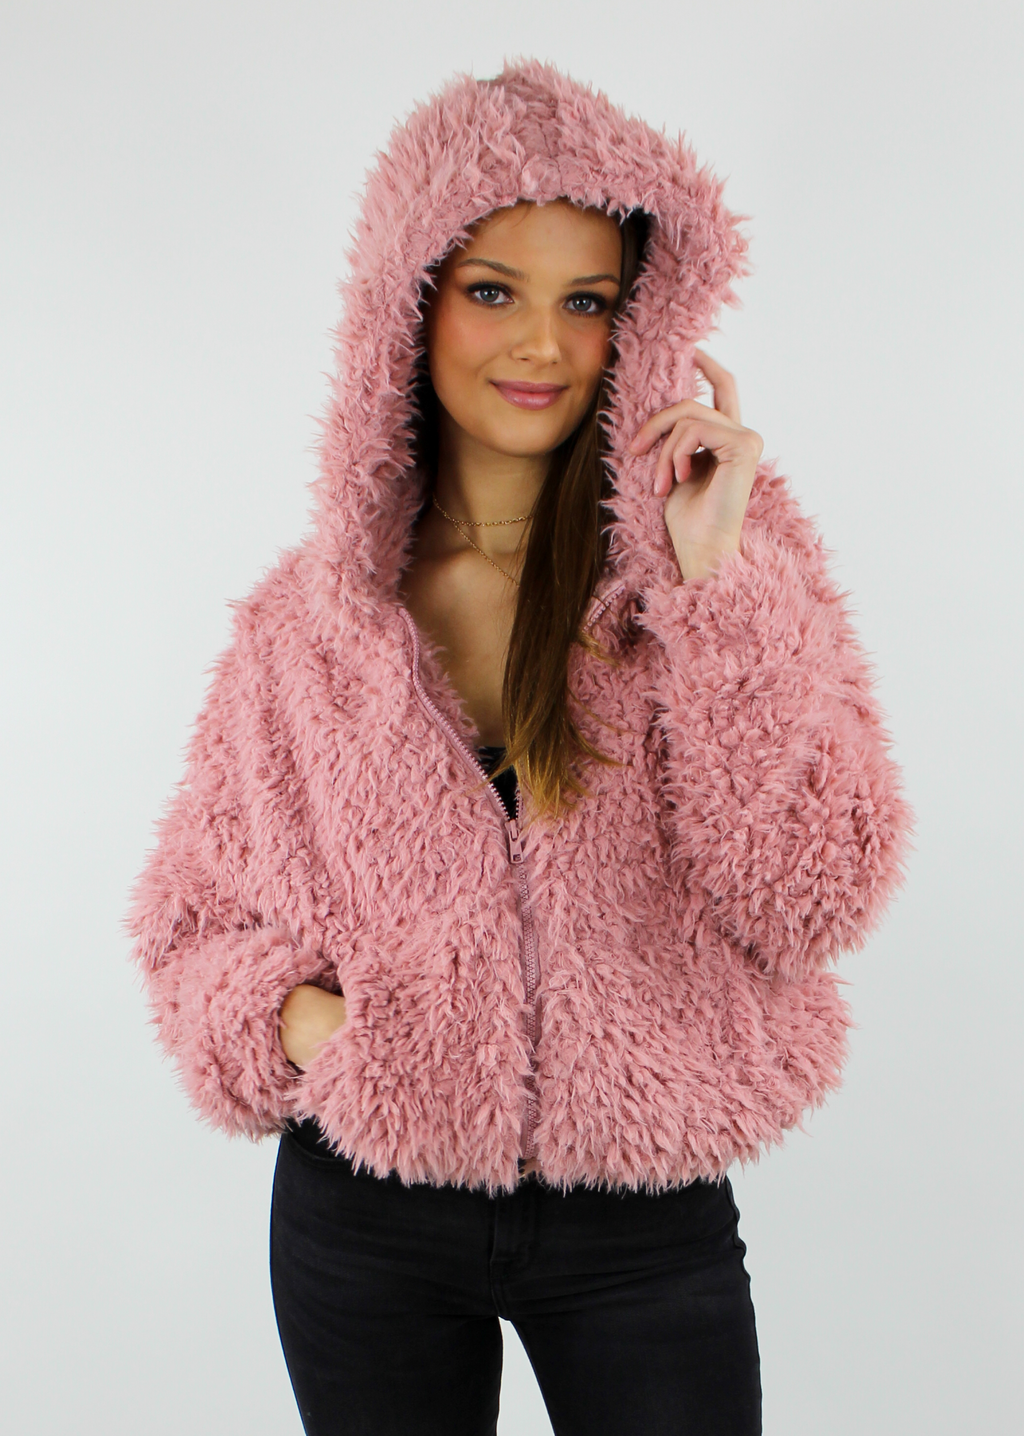 Lush Life Fuzzy Zip Up Jacket With Hood ★ Mauve